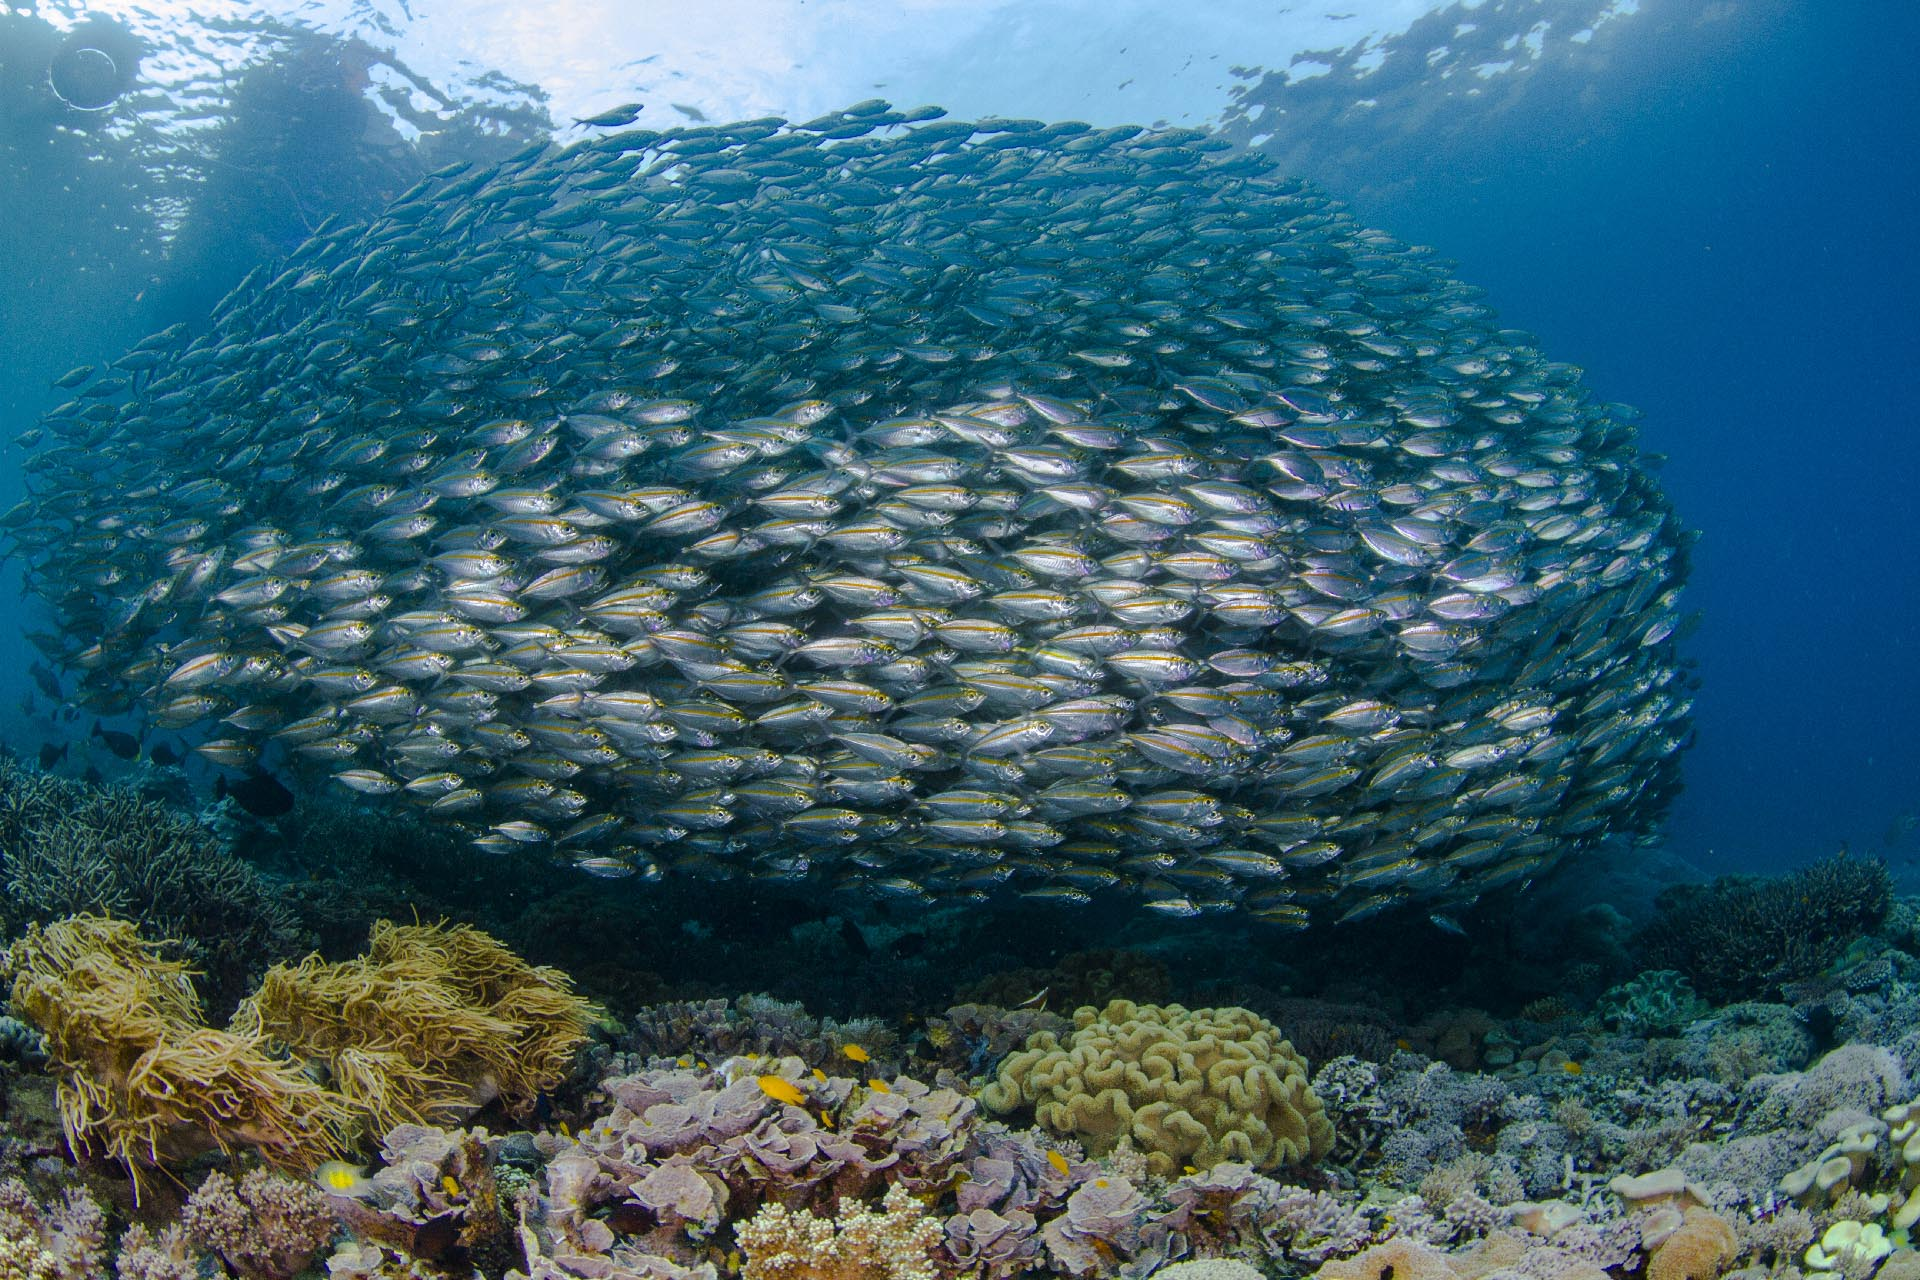 Large school of fish over coral reef